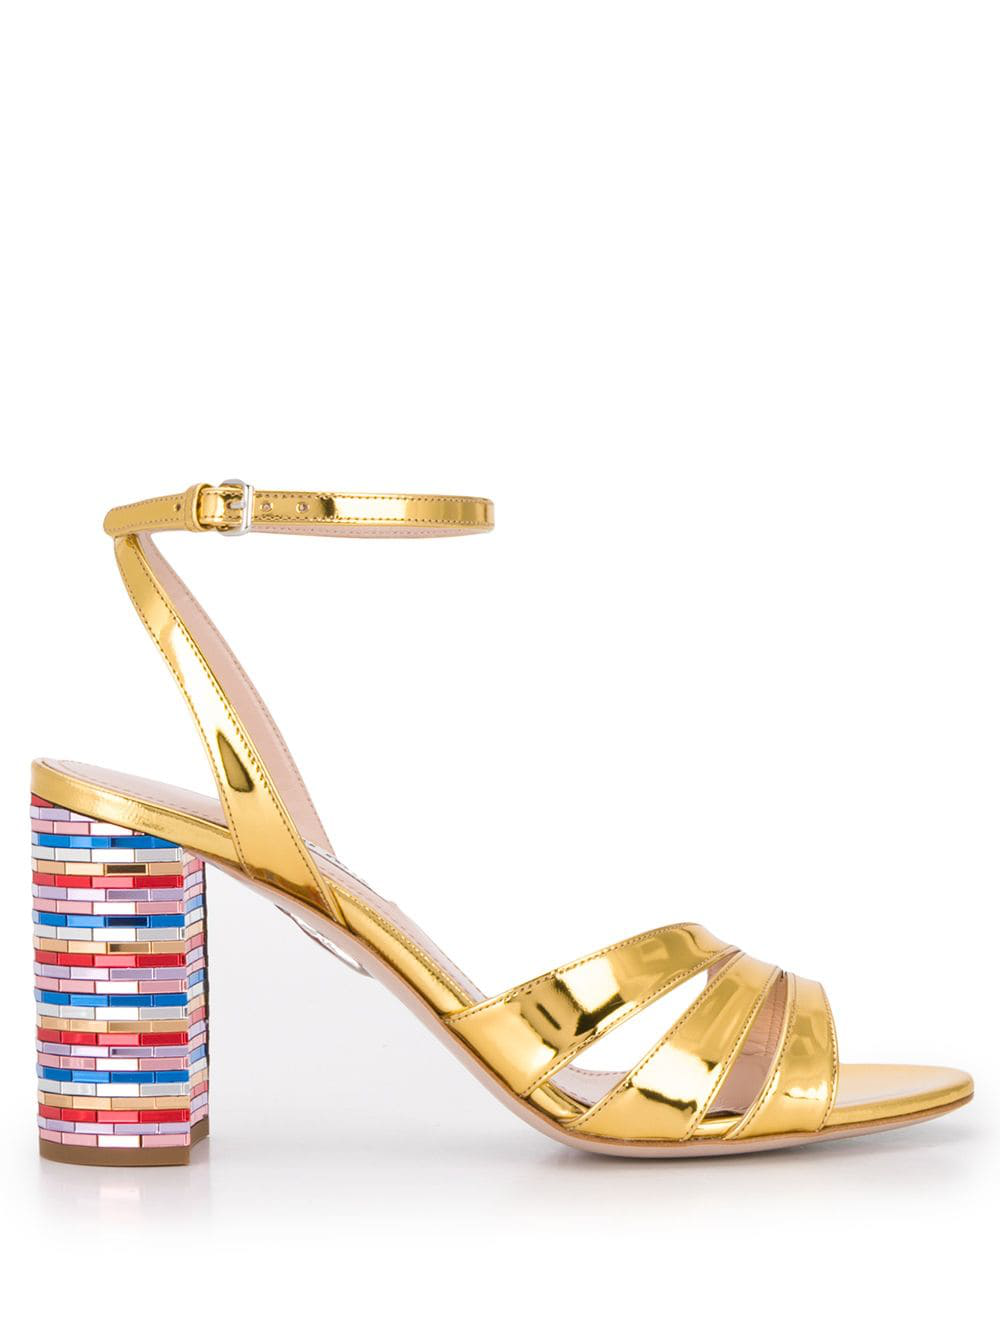 9a580405c Miu Miu Metallic Leather Sandals - Gold